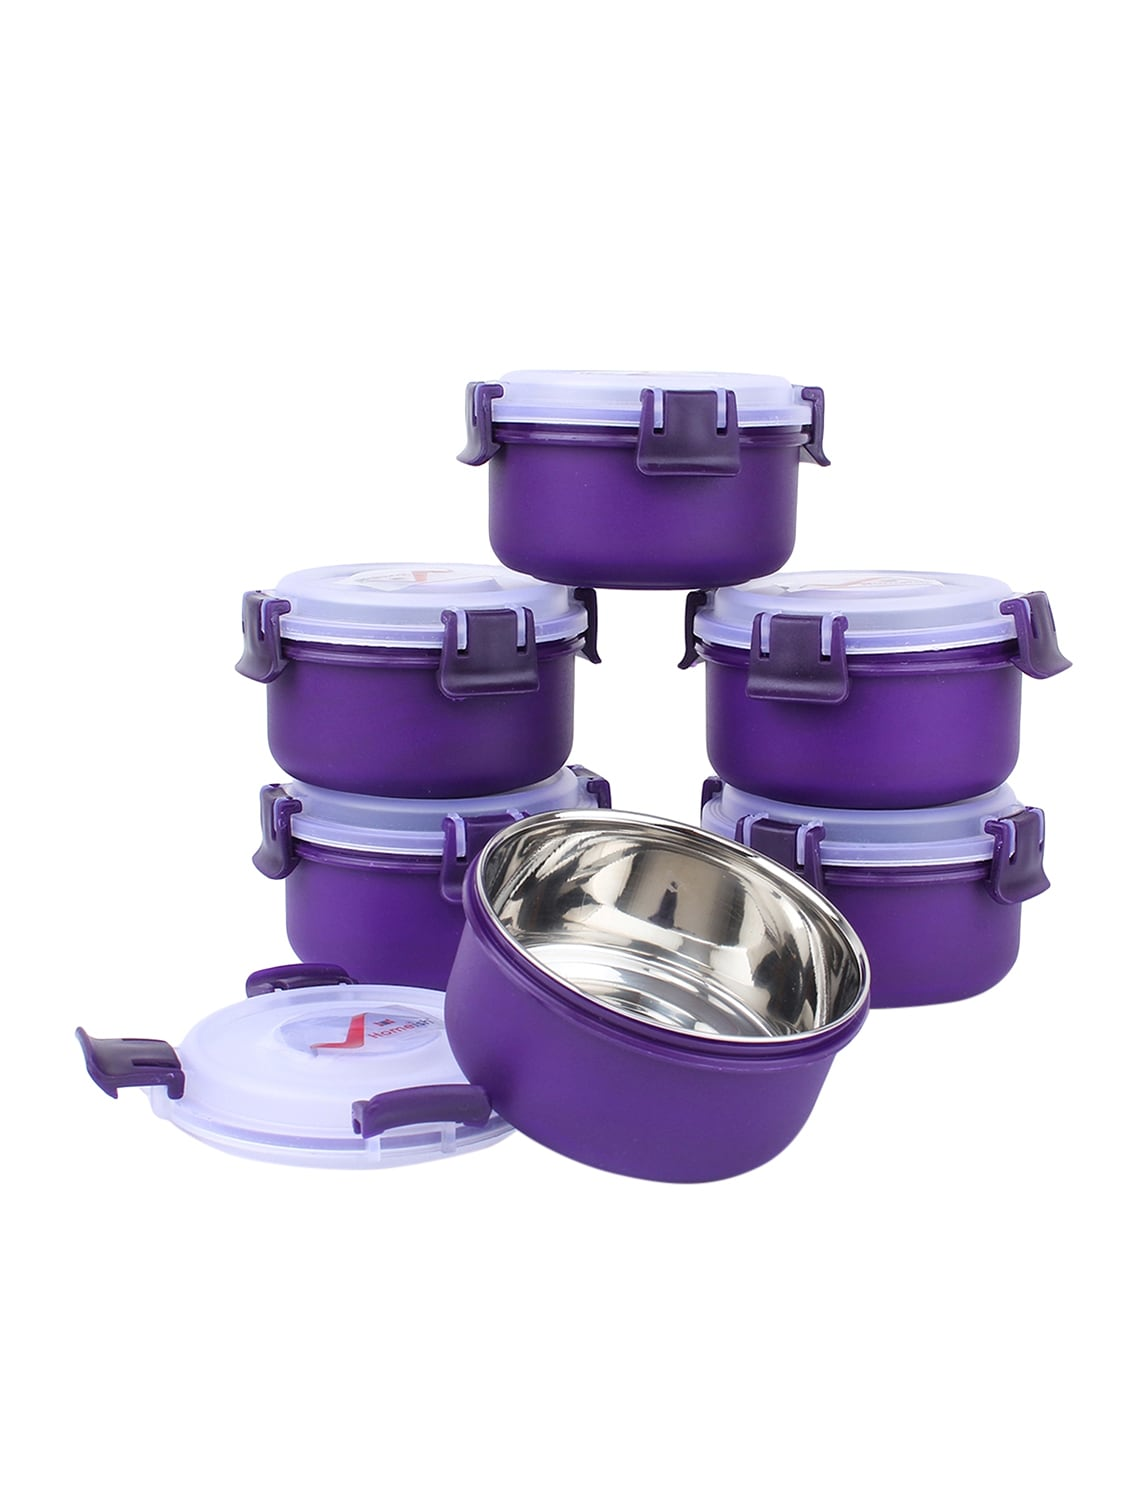 Buy lock lock airtight leakproof containers for office home kitchen set of 6 for unisex from homeish for ₹840 at 35 off 2019 limeroad com